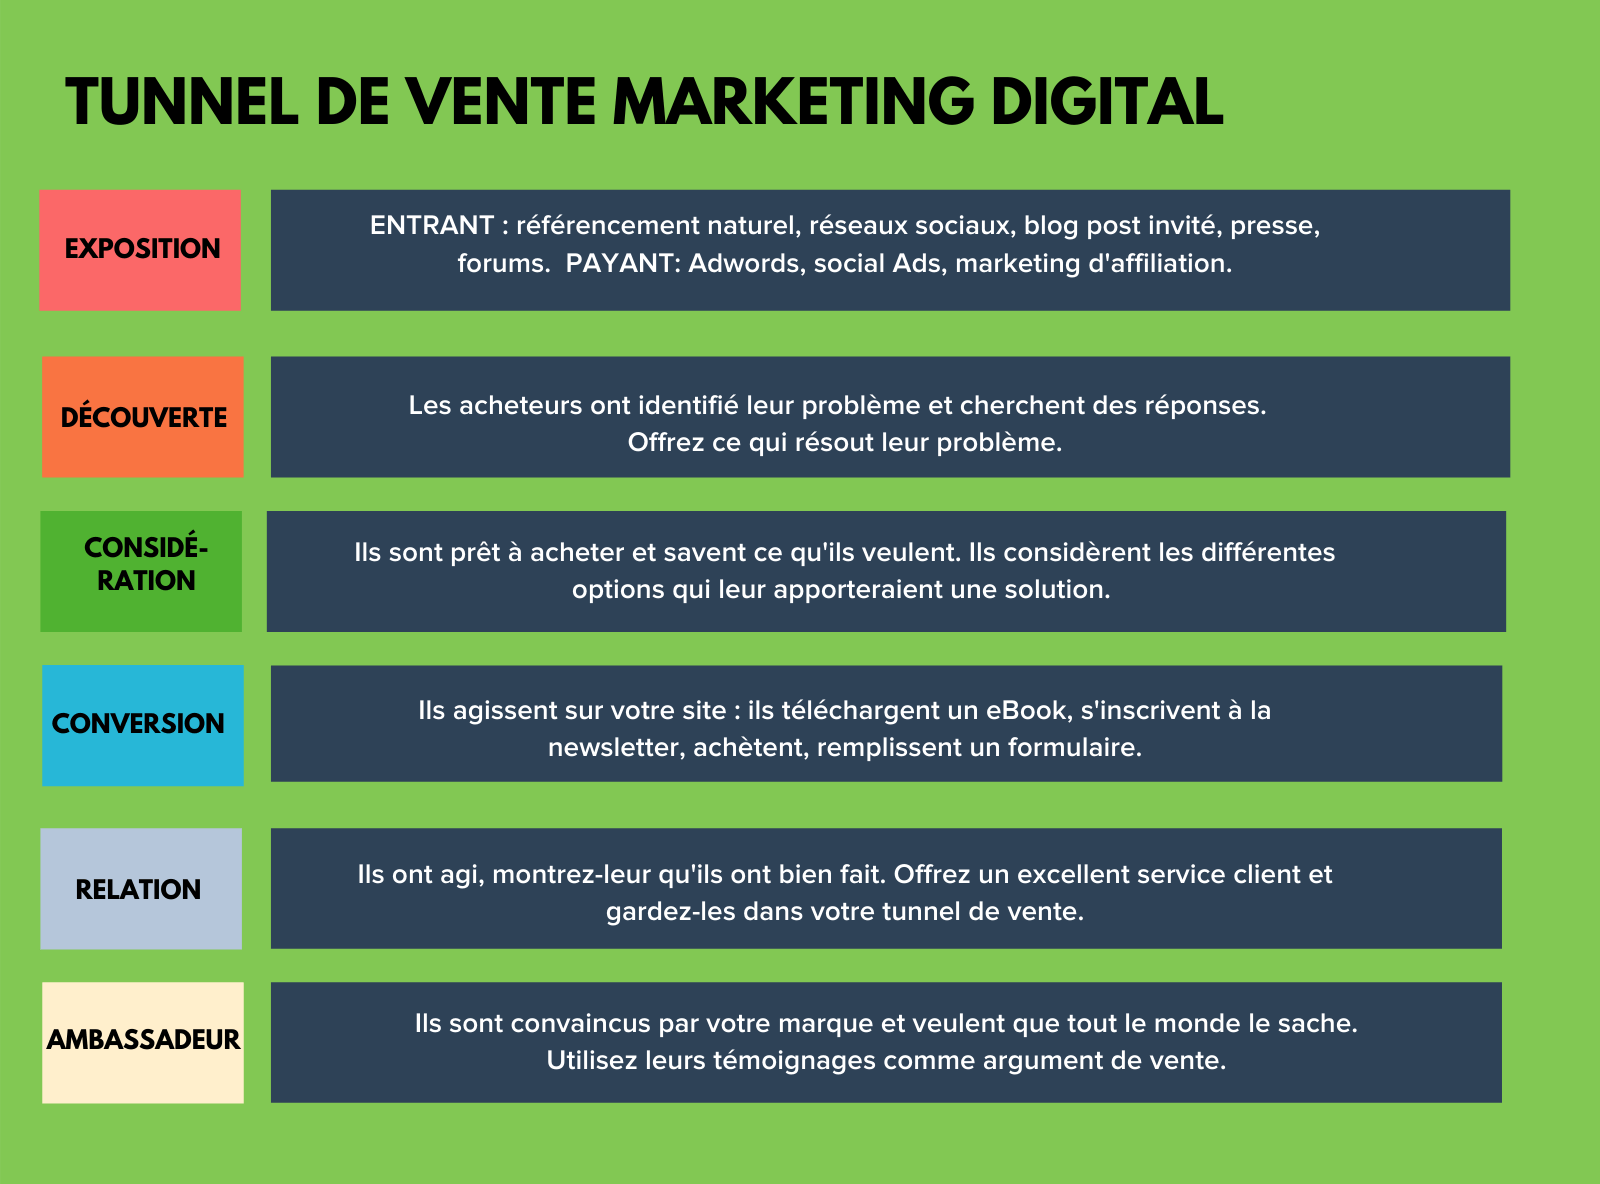 TUNNEL DE VENTE MARKETING DIGITAL